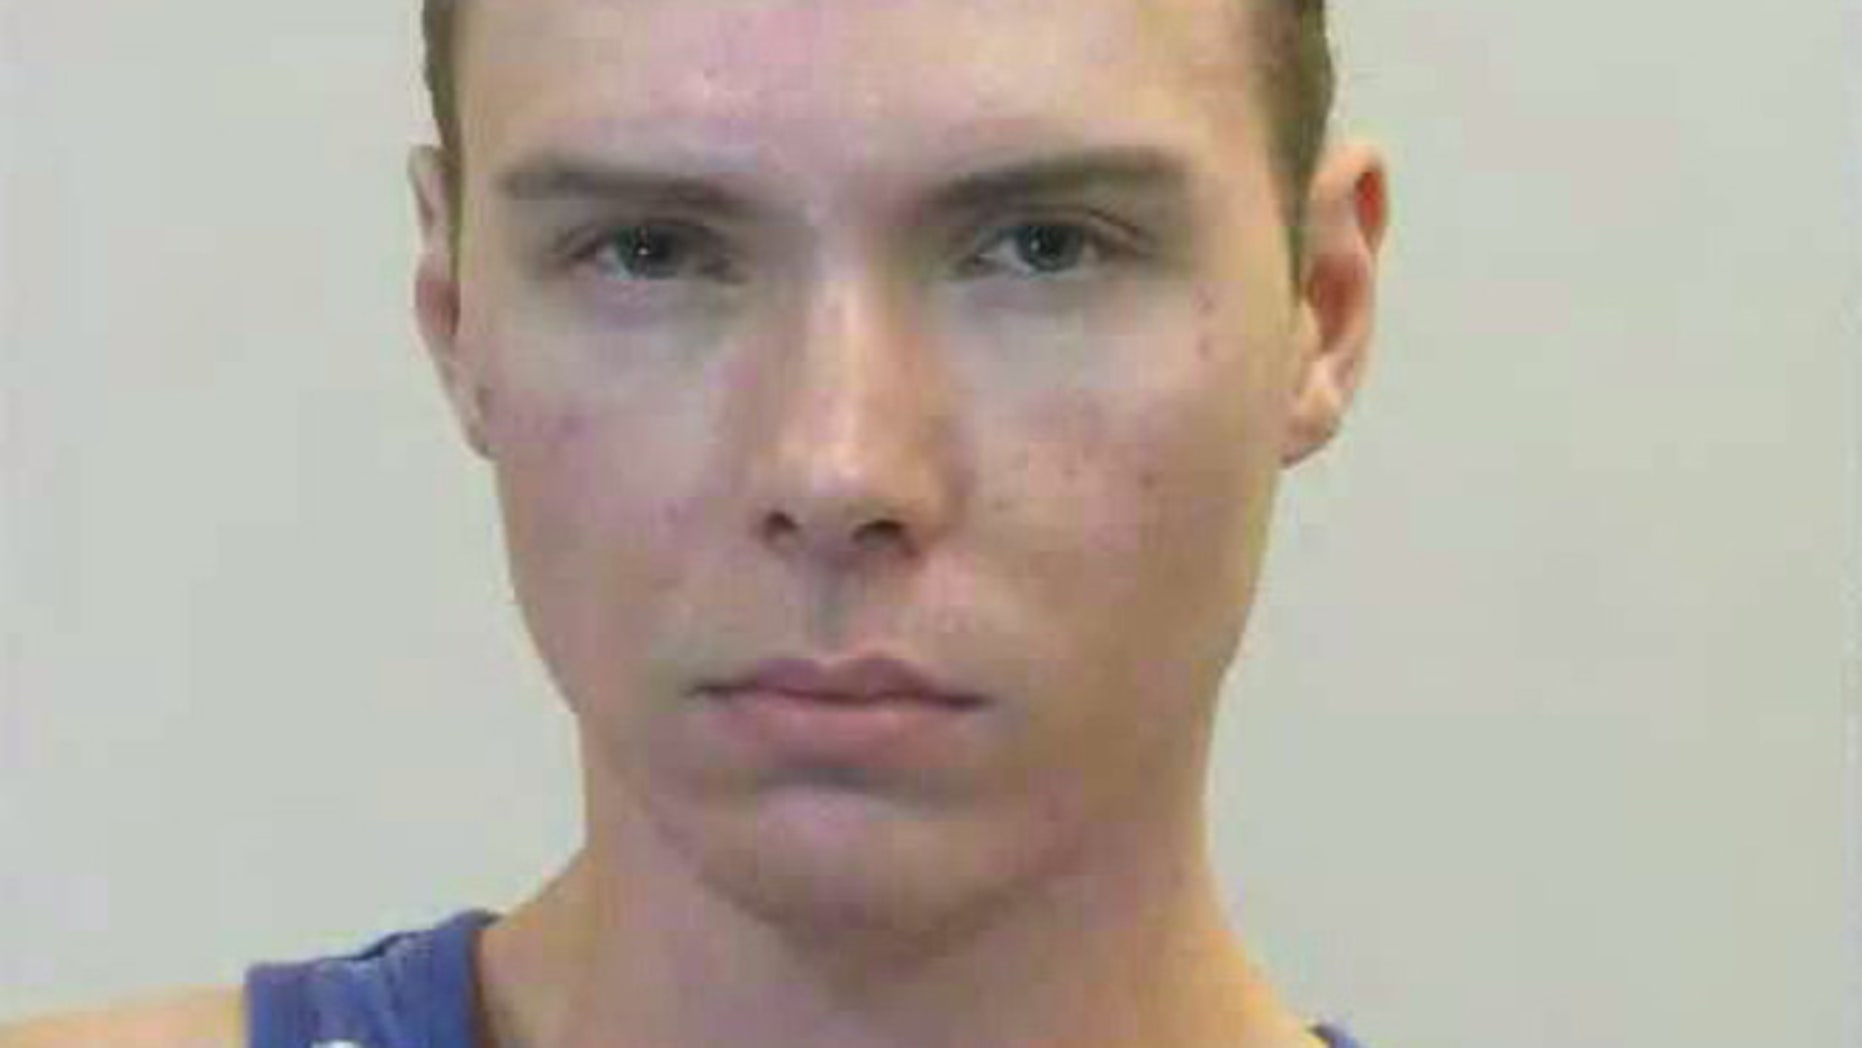 This file photo released on June 5, 2012 provided by the Montreal Police Service shows Luka Rocco Magnotta. (AP/Montreal Police Service via The Canadian Press)